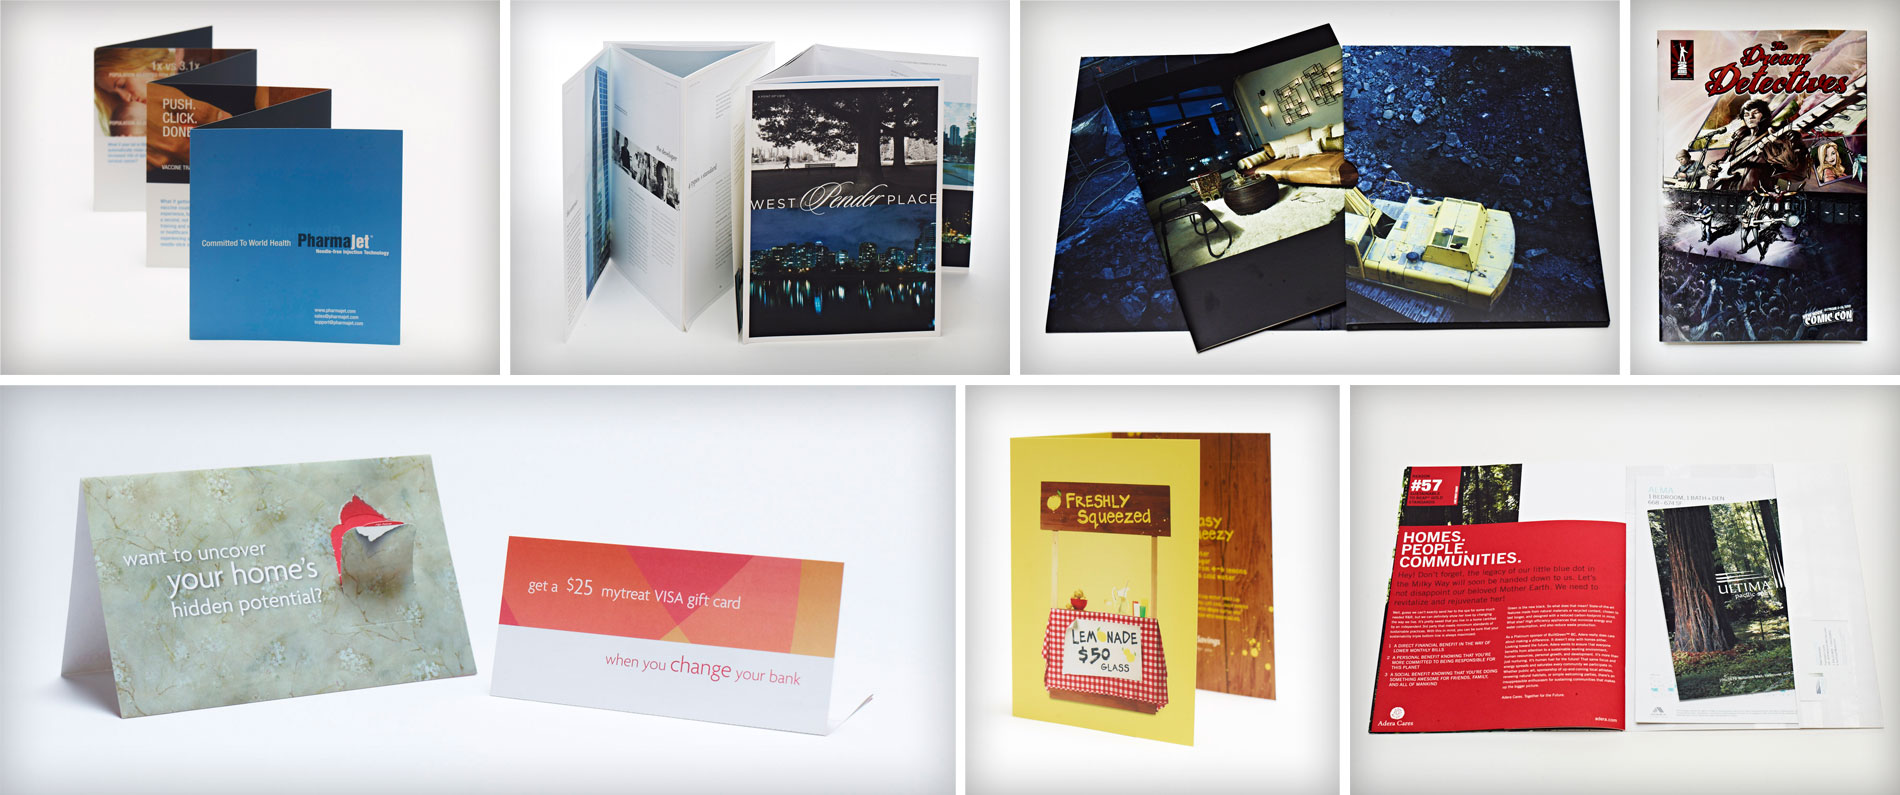 High quality comic books and brochures